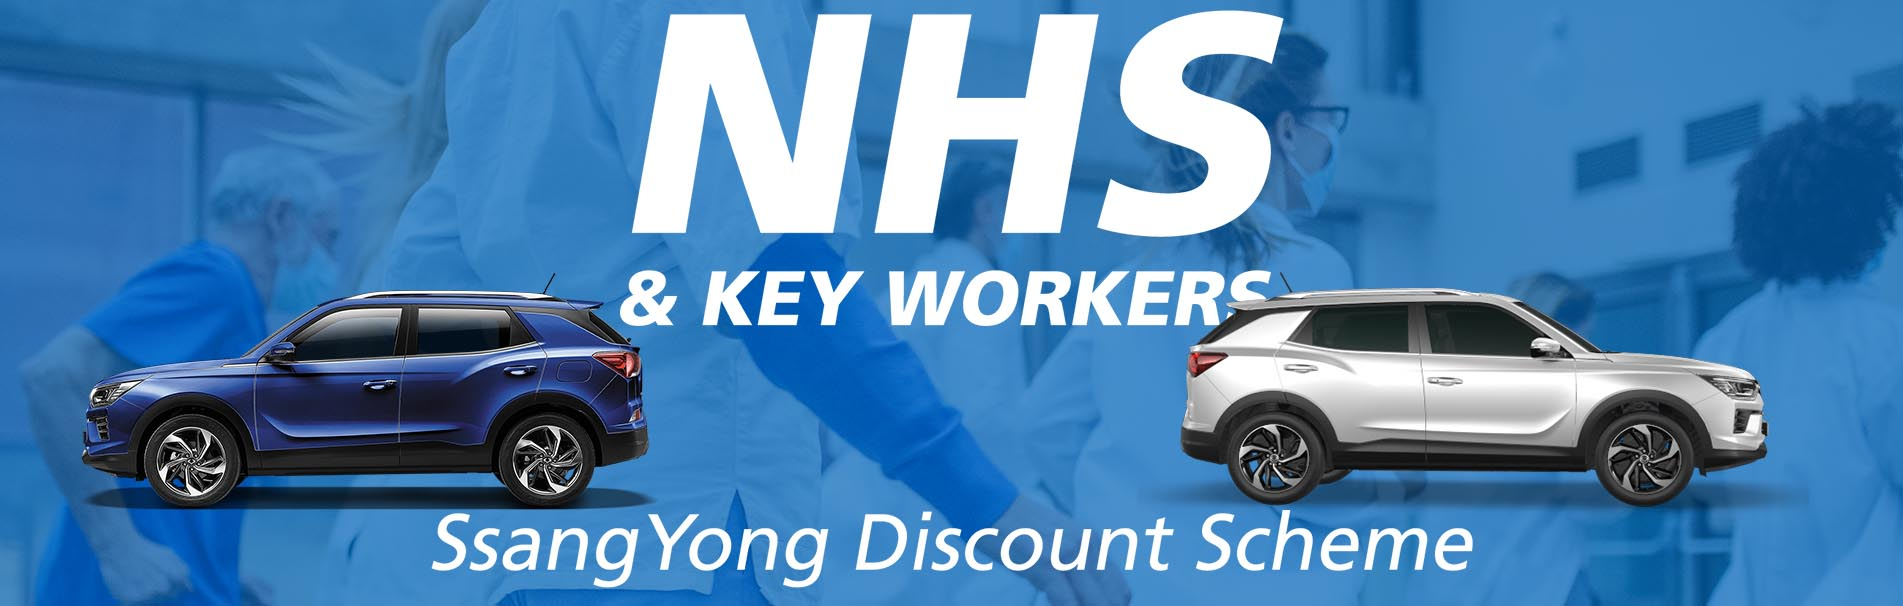 nhs-care-worker-car-discount-scheme-sli